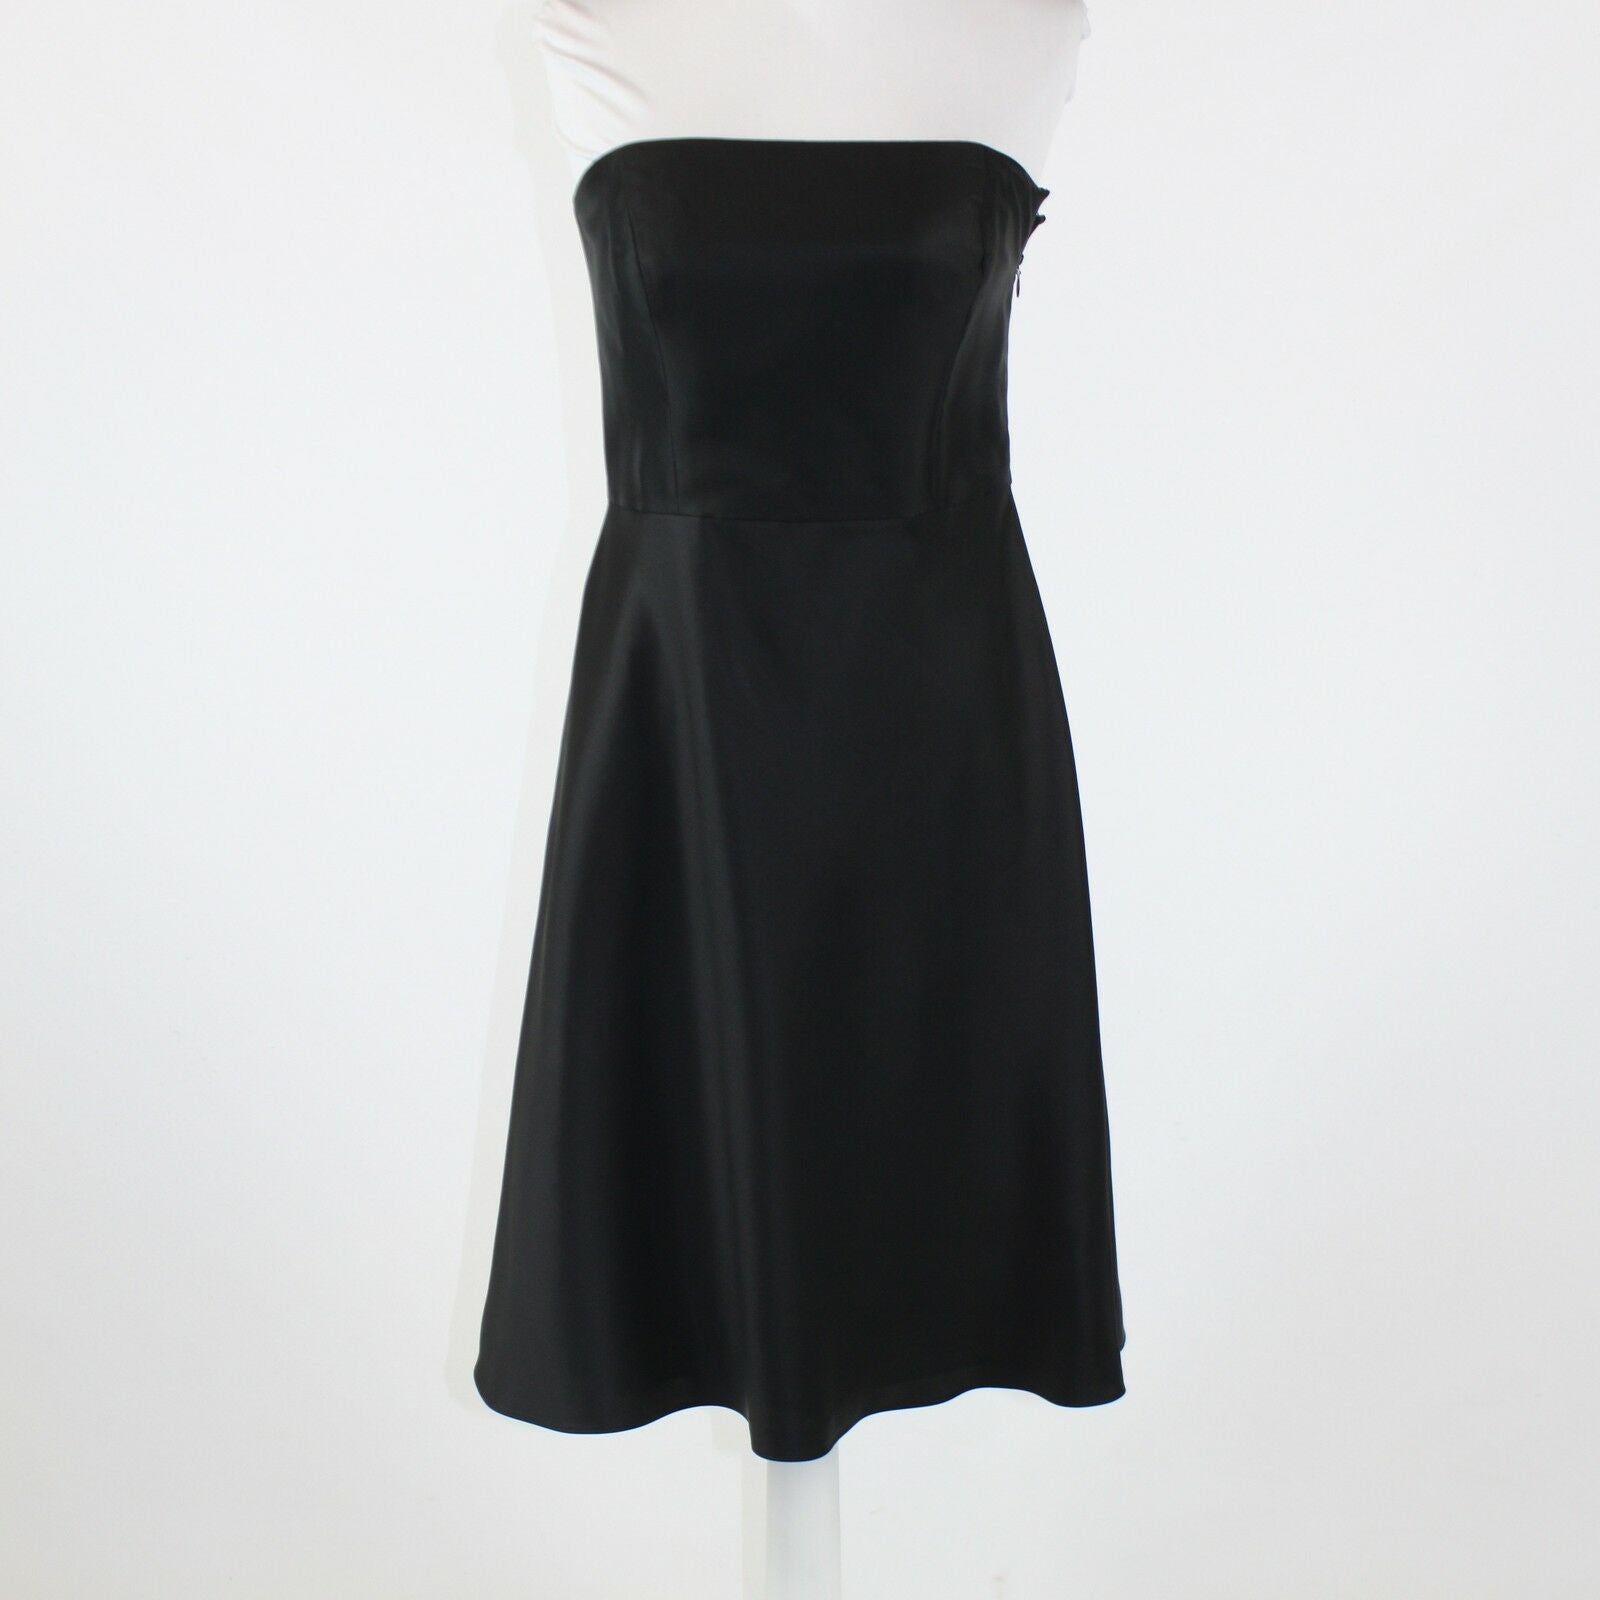 Black 100% silk sateen ANN TAYLOR strapless A-line dress 6P